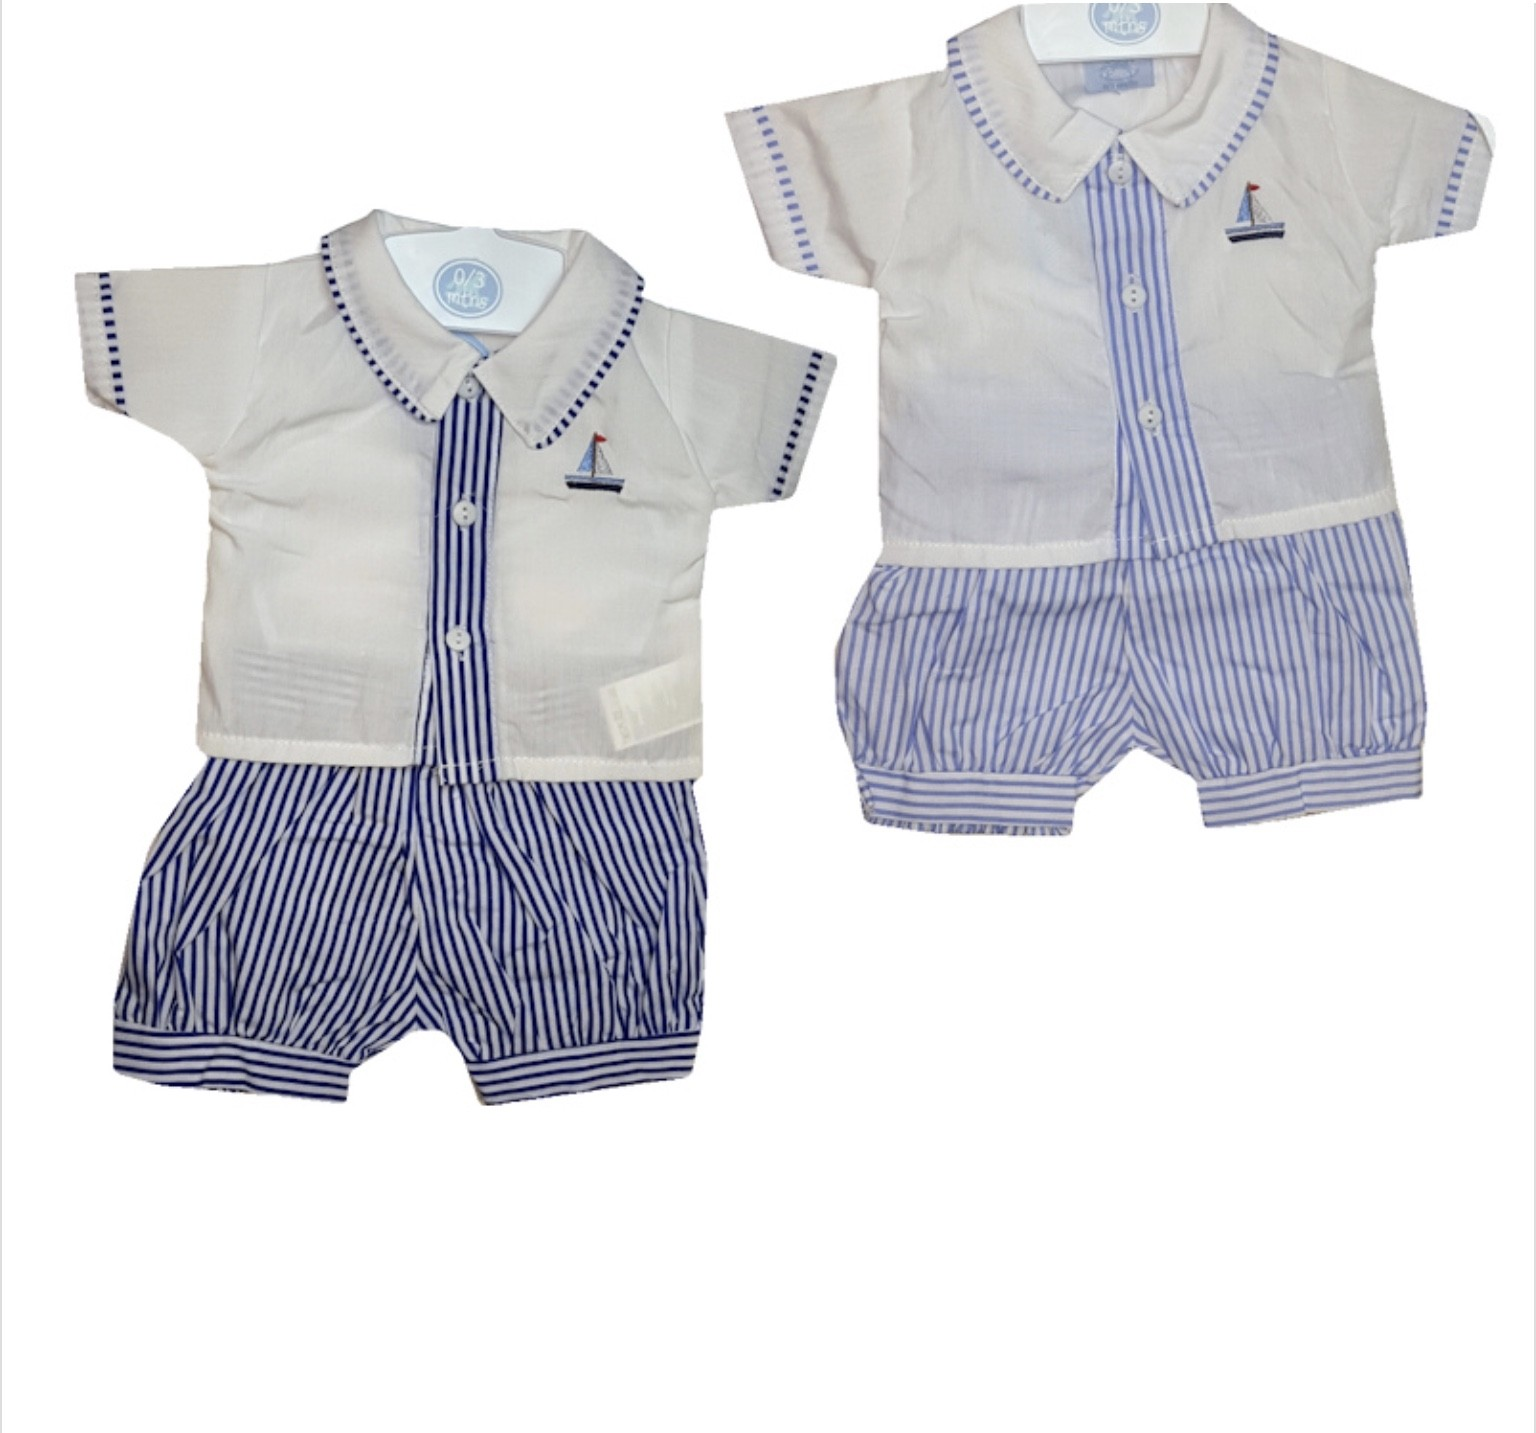 Rock a Bye Baby Baby Boys Shirt and Shorts Set PACK OF 6